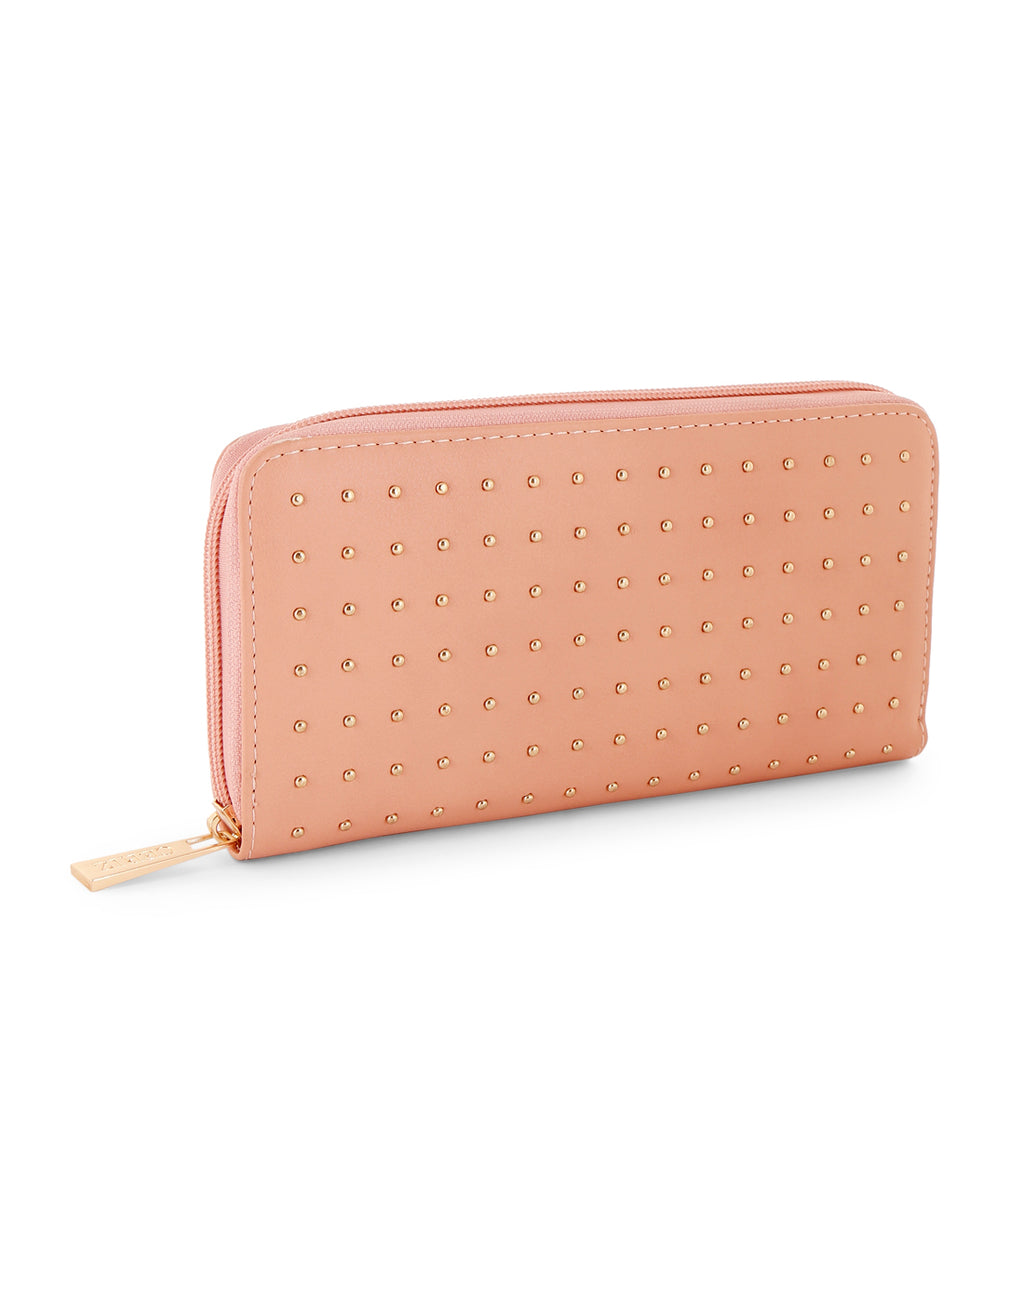 Iberis Pink Studded Wallet